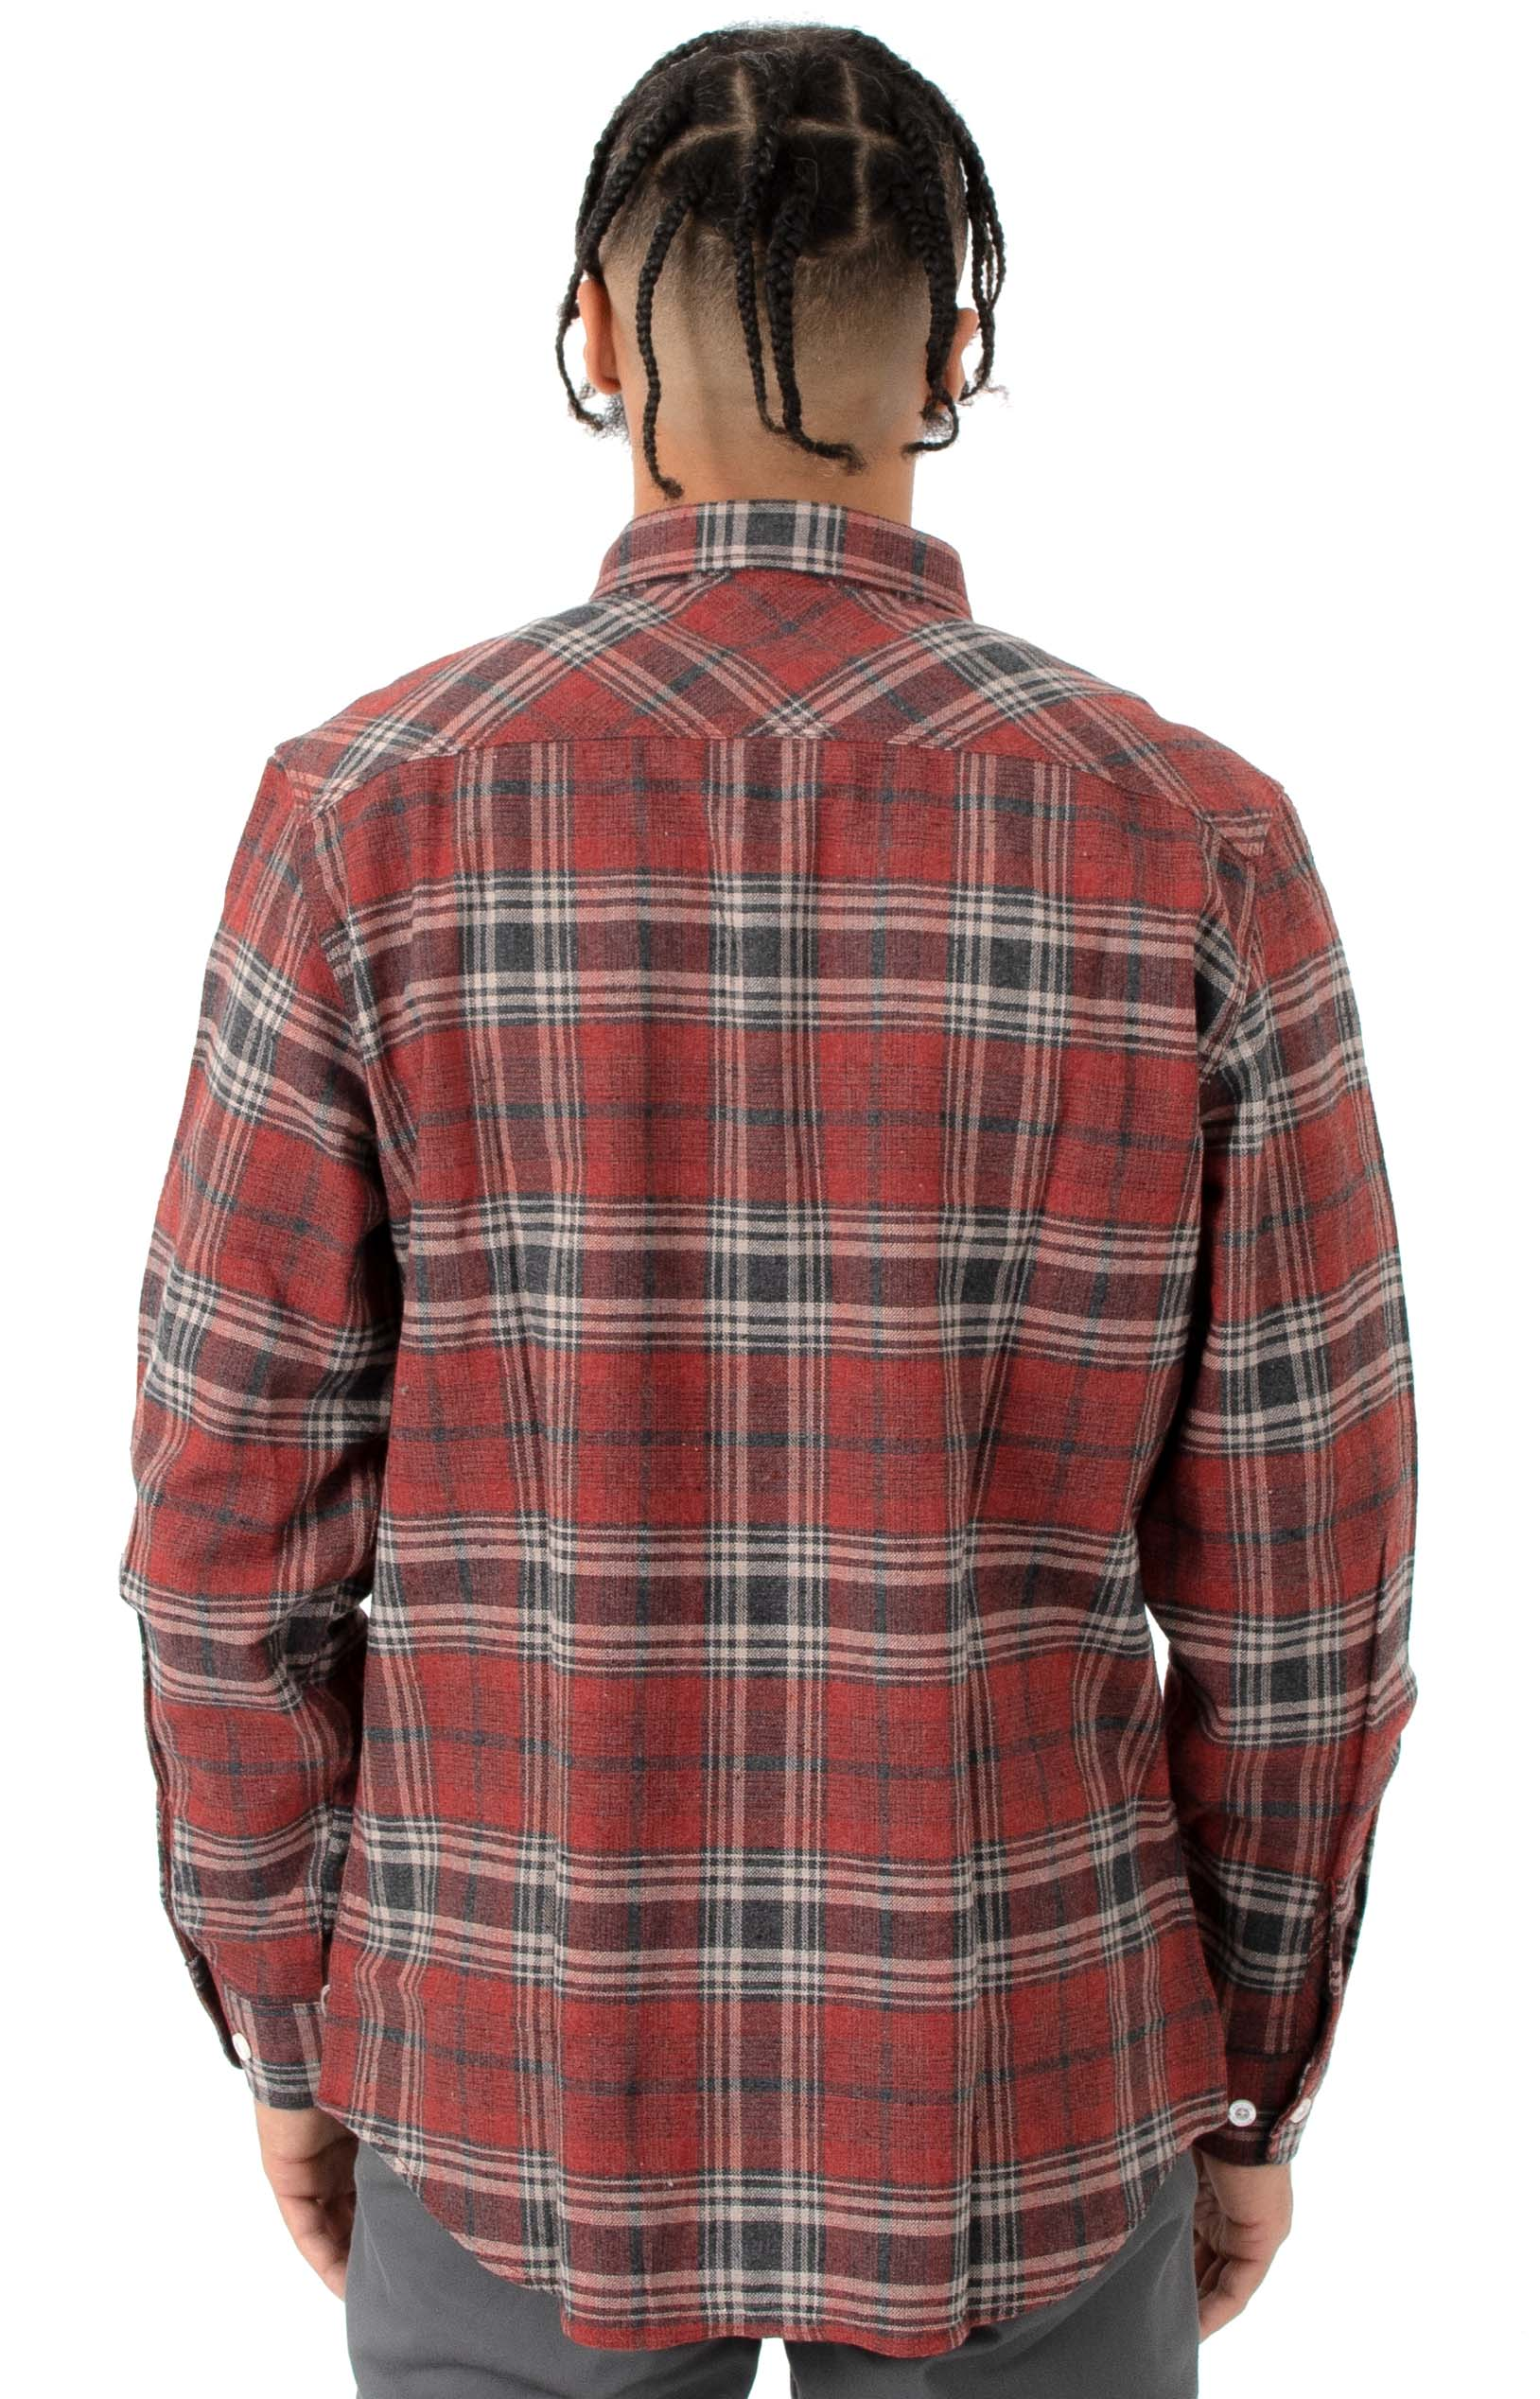 Bowery L/S Button-Up Shirt - Brick/Steel 3